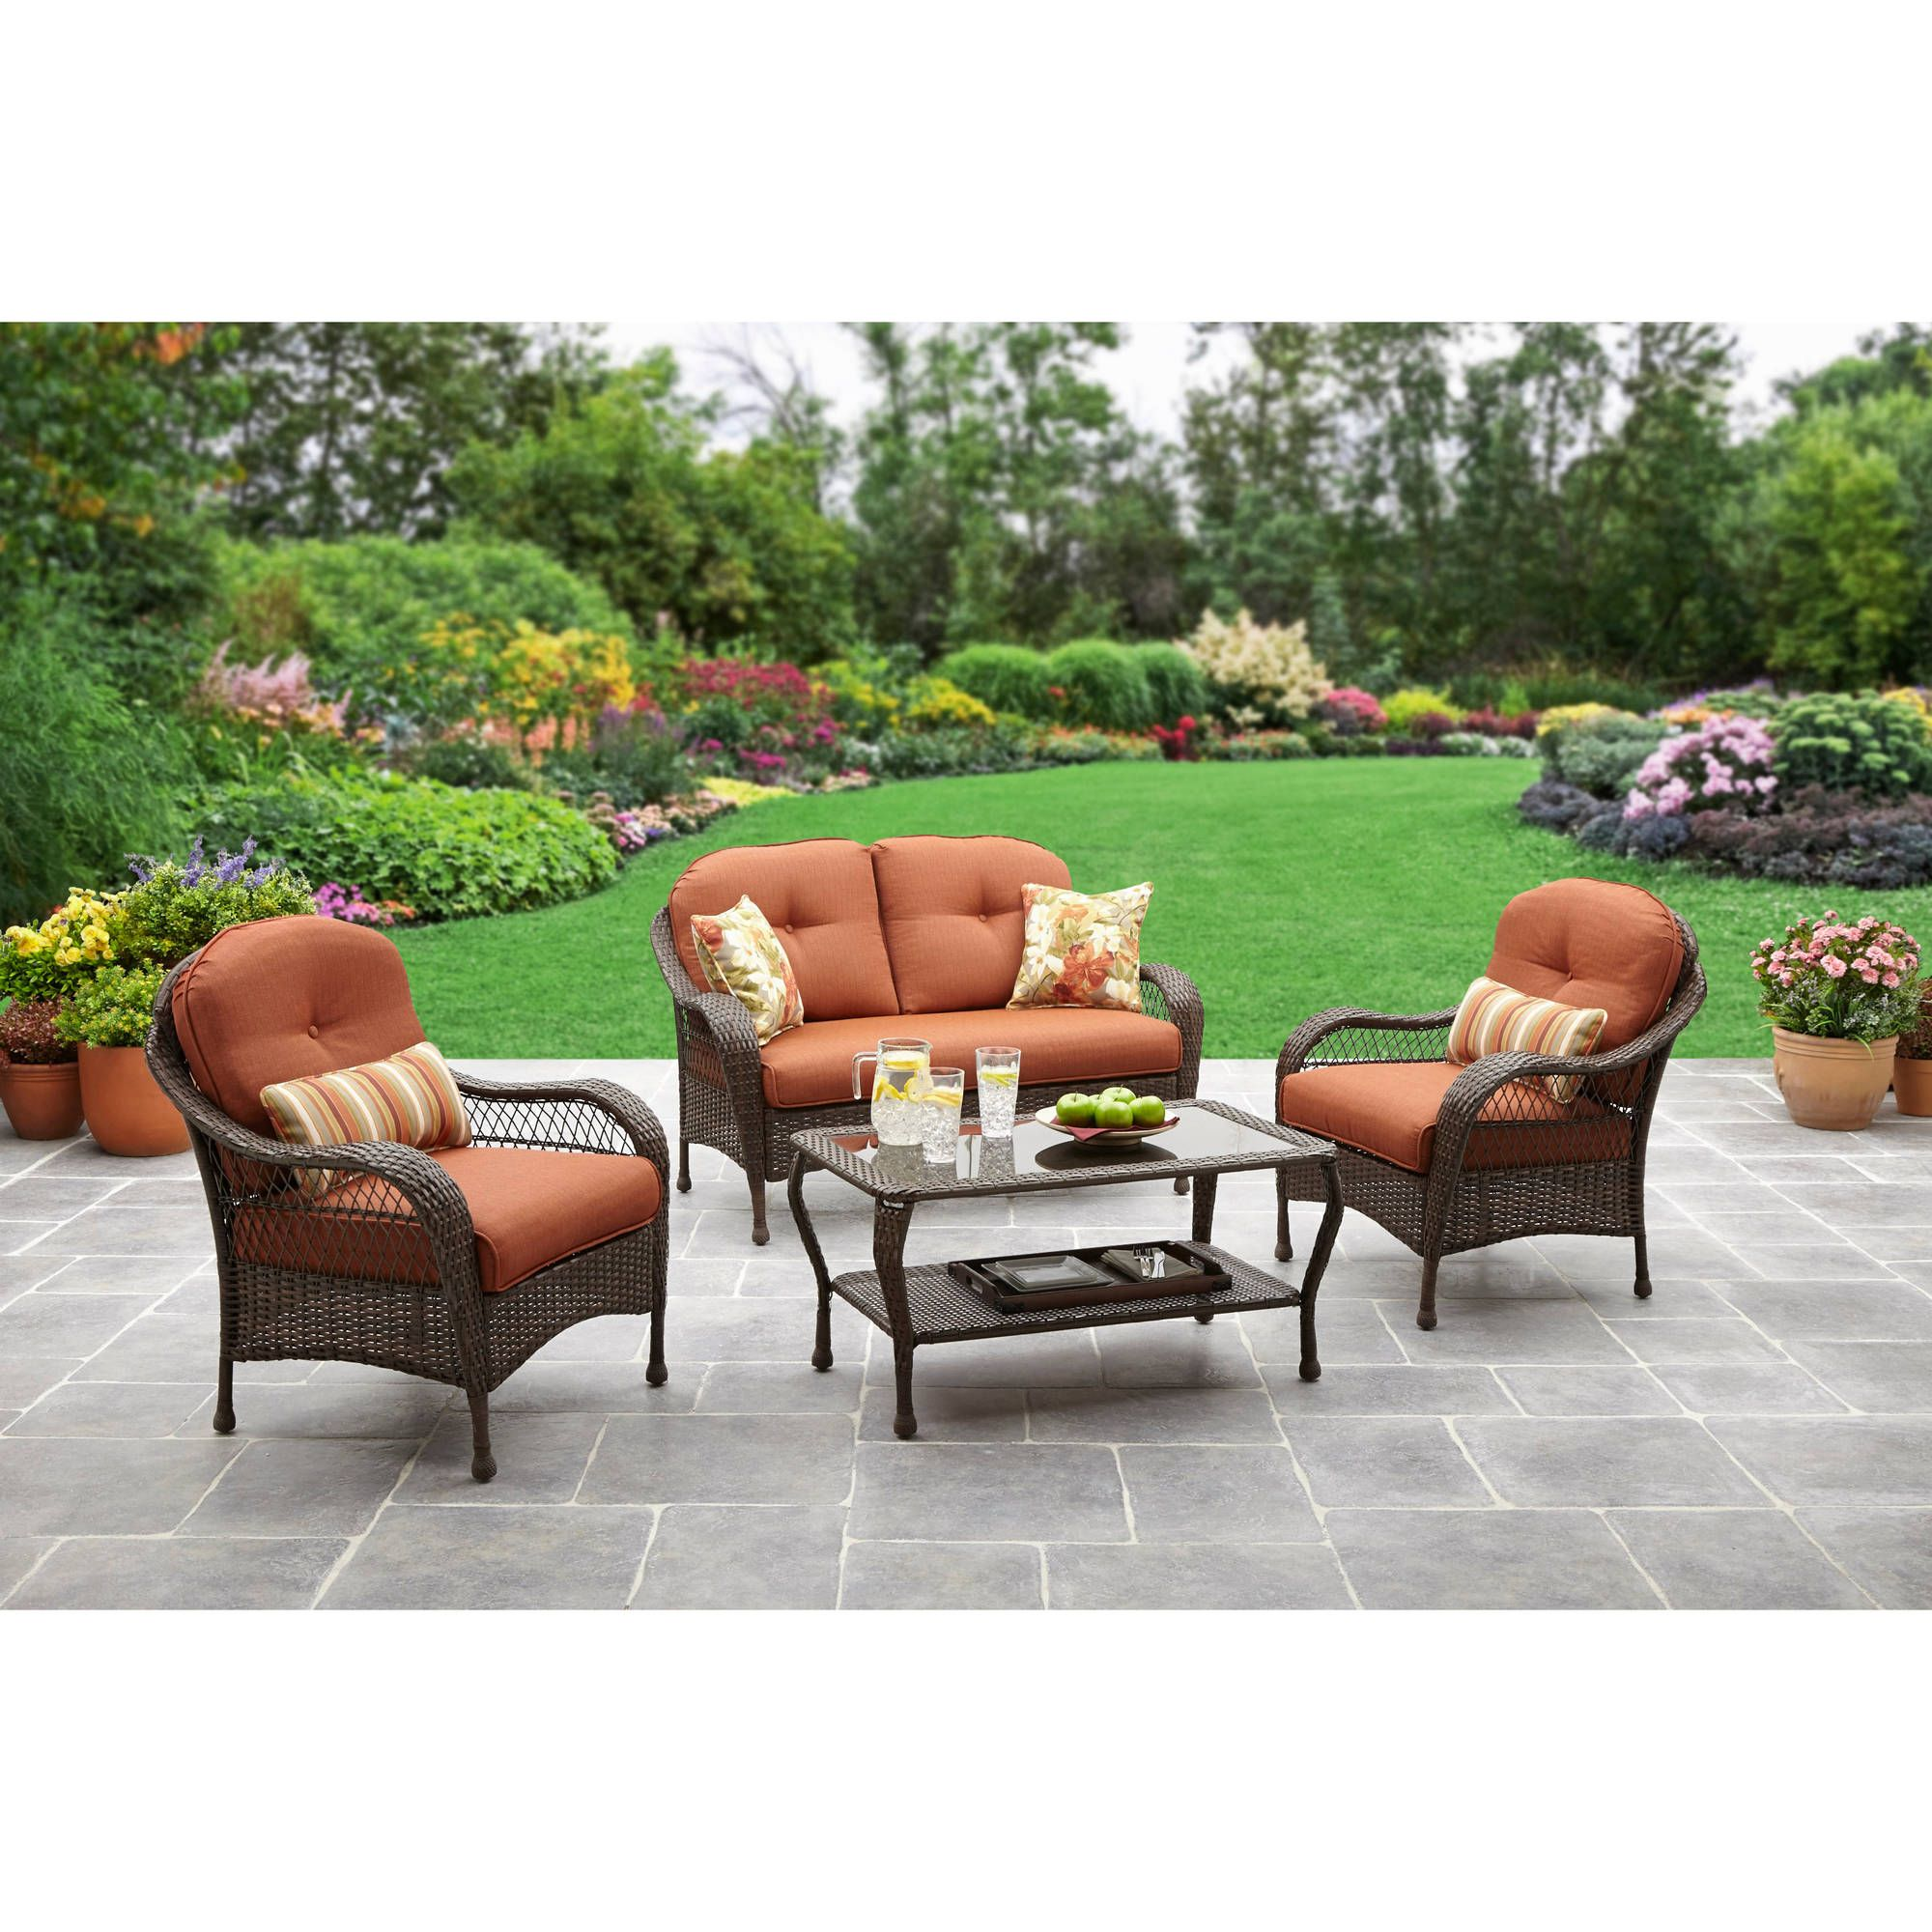 High Quality Walmart Patio Cushions Better Homes Gardens Home Garden